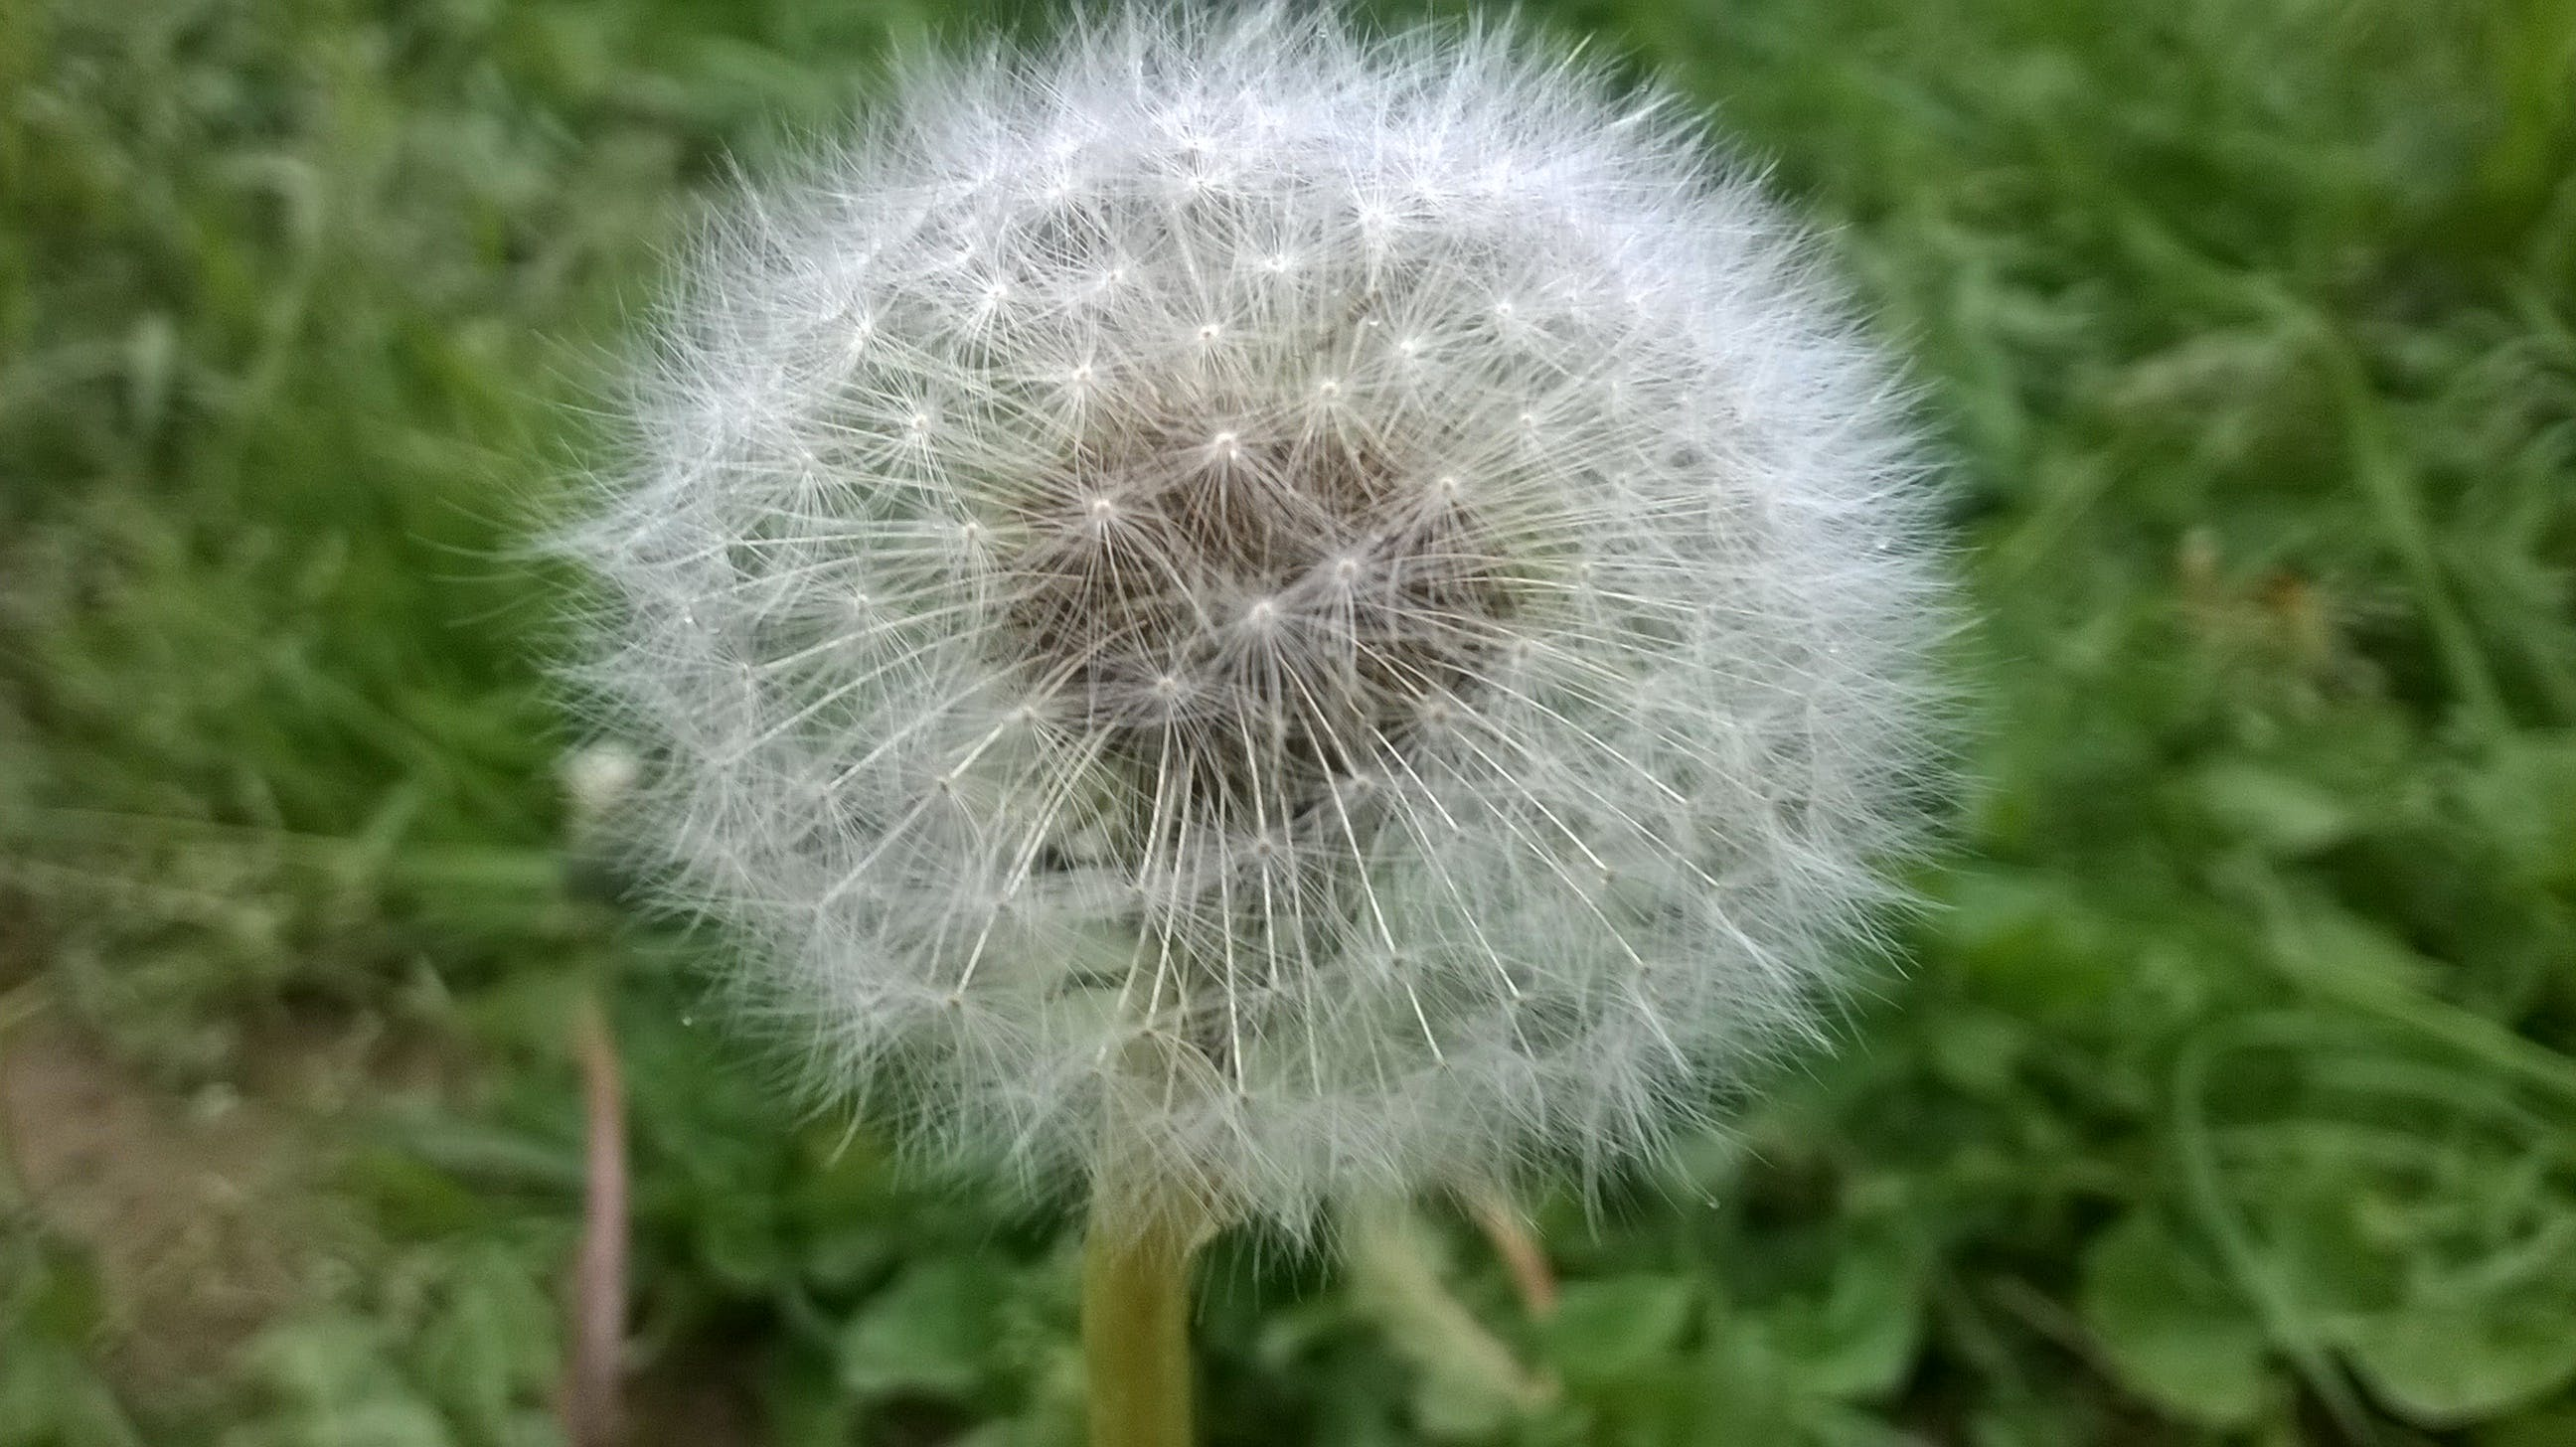 Dandelion in Shallow Photo